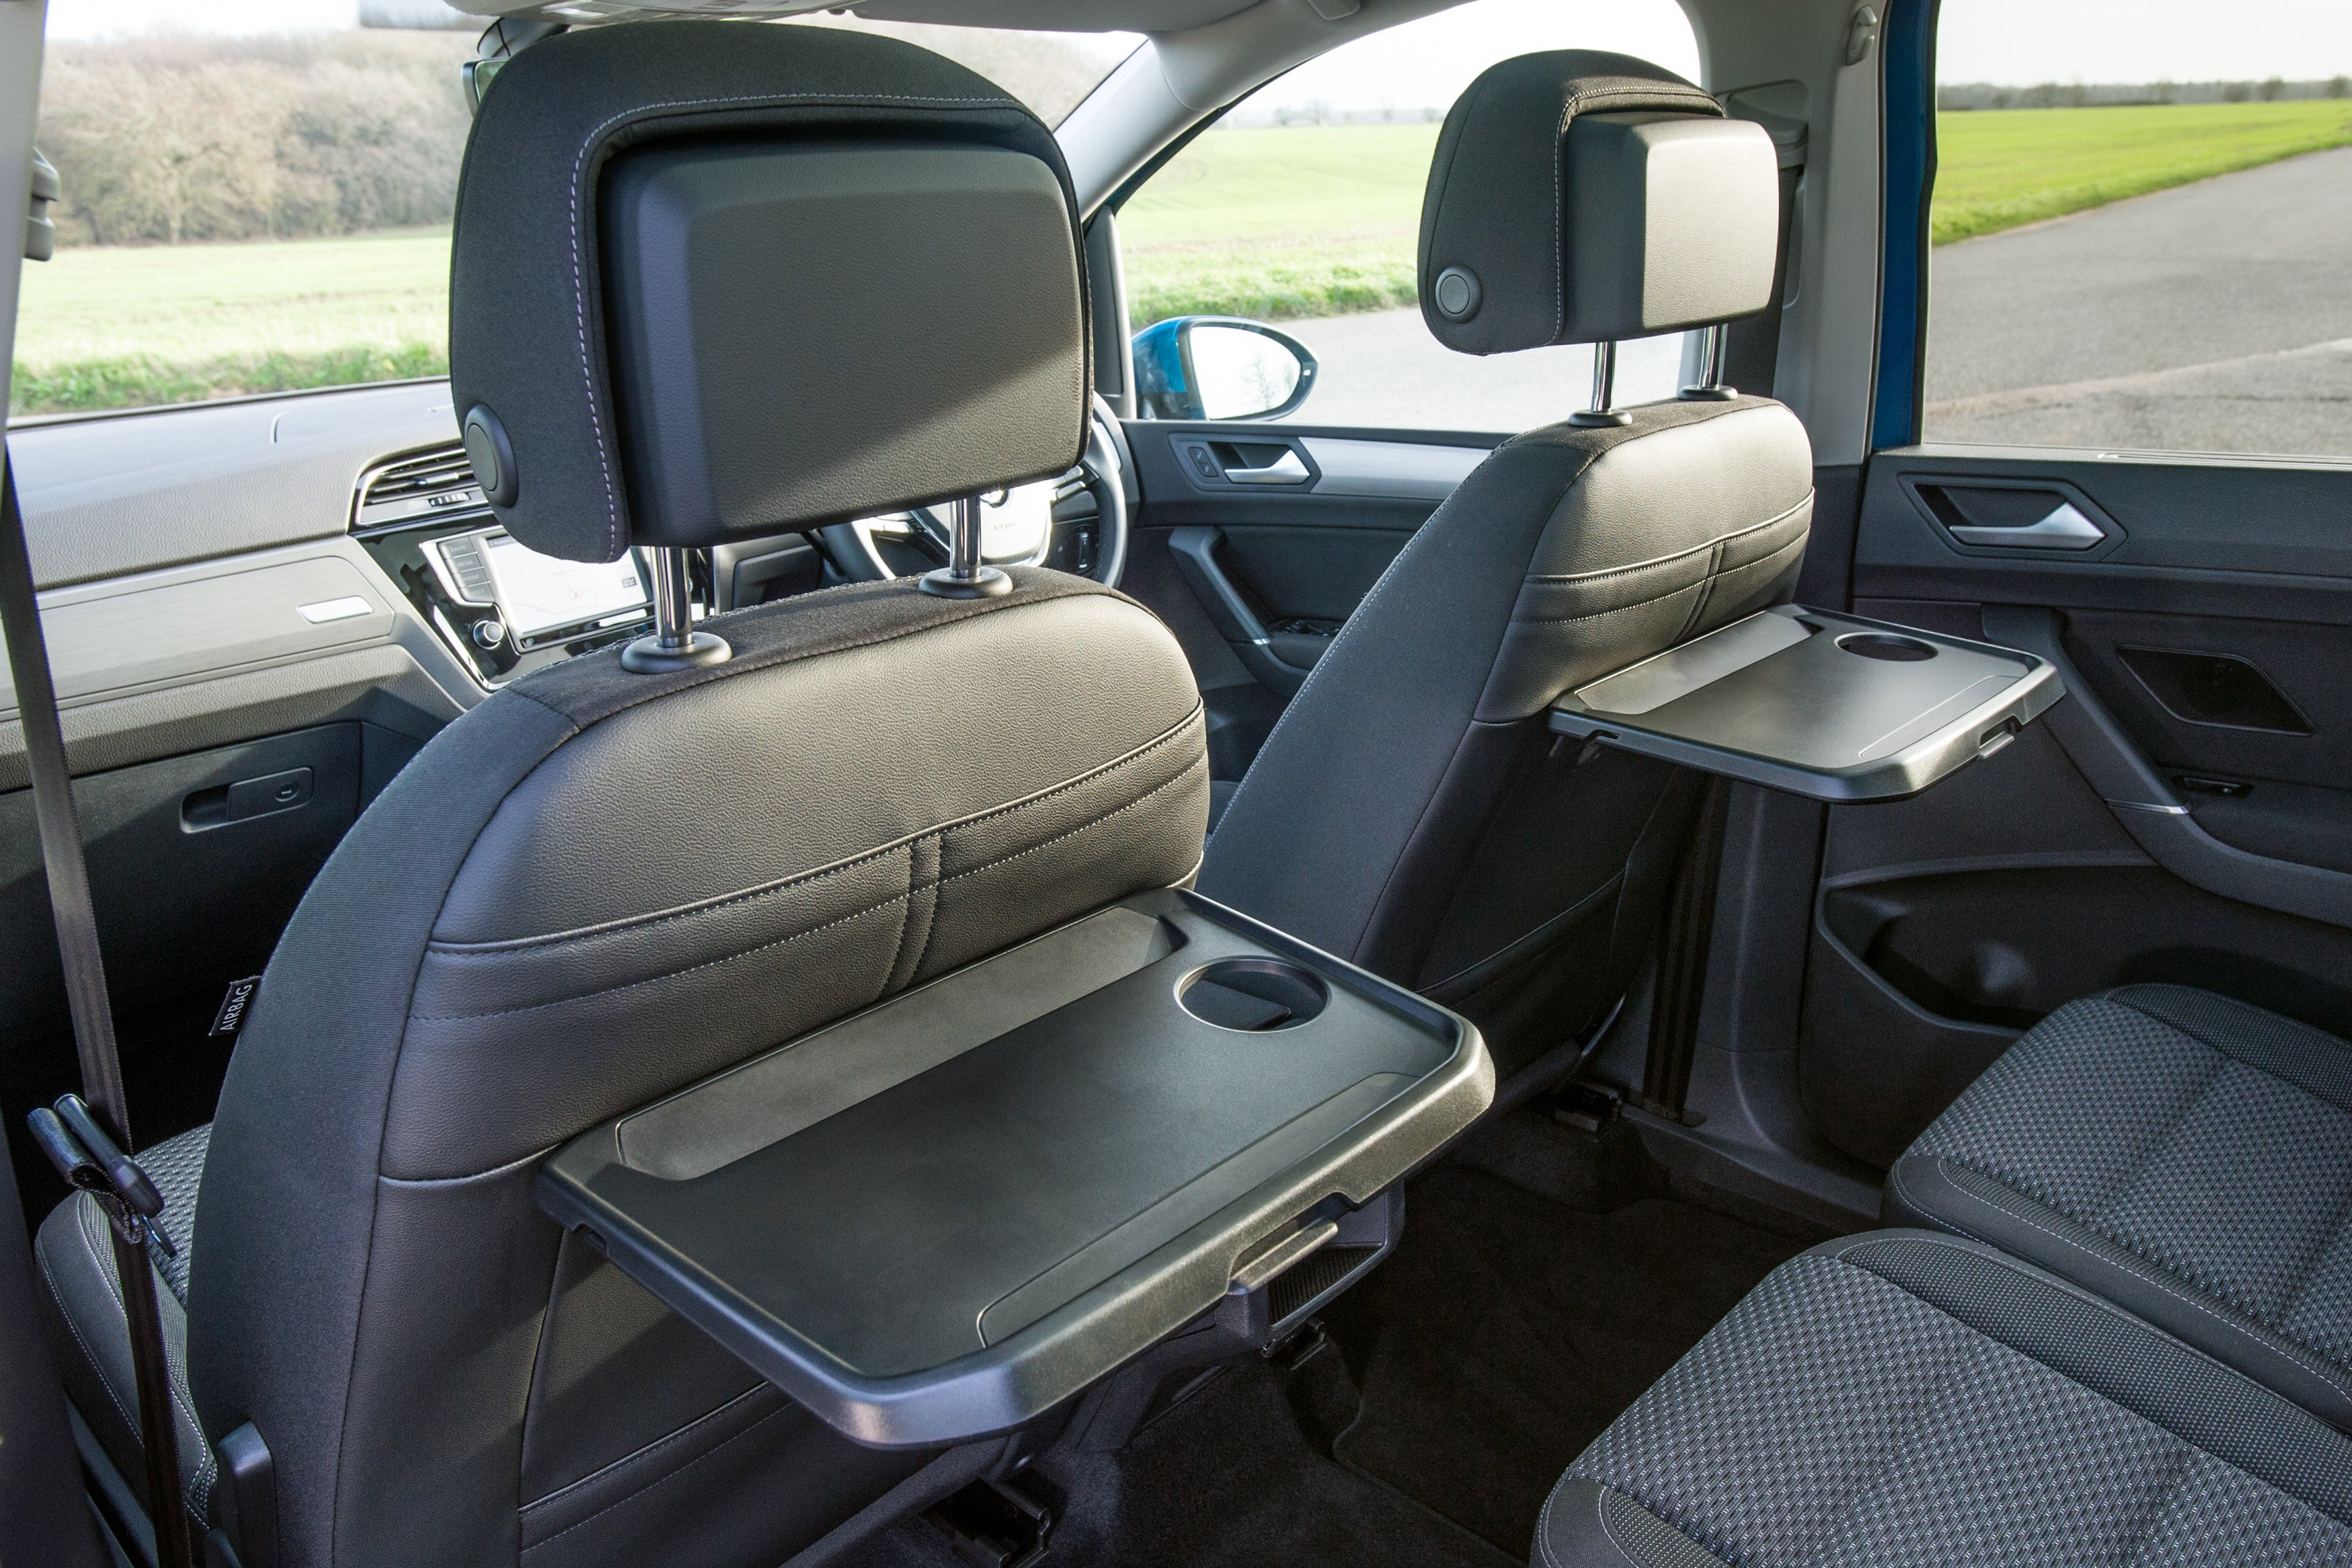 Volkswagen Touran interior rear seat tables